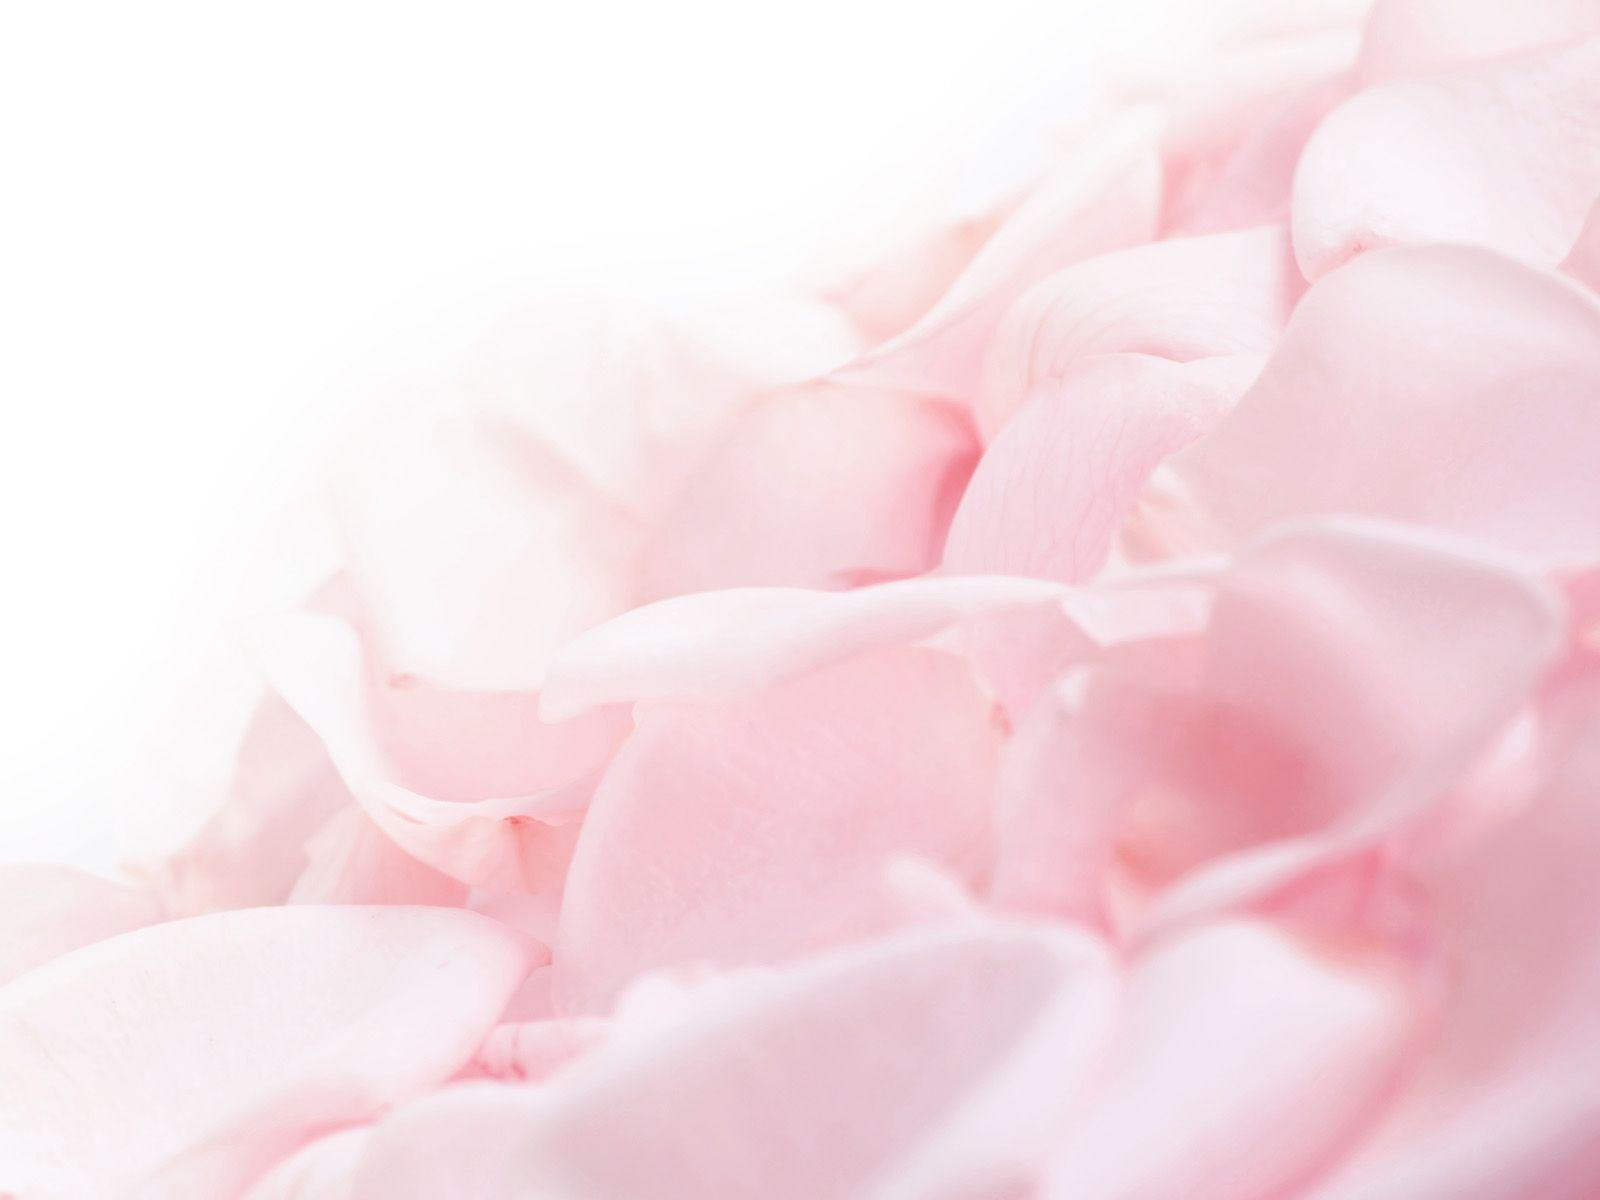 white and pink wallpaper - photo #27